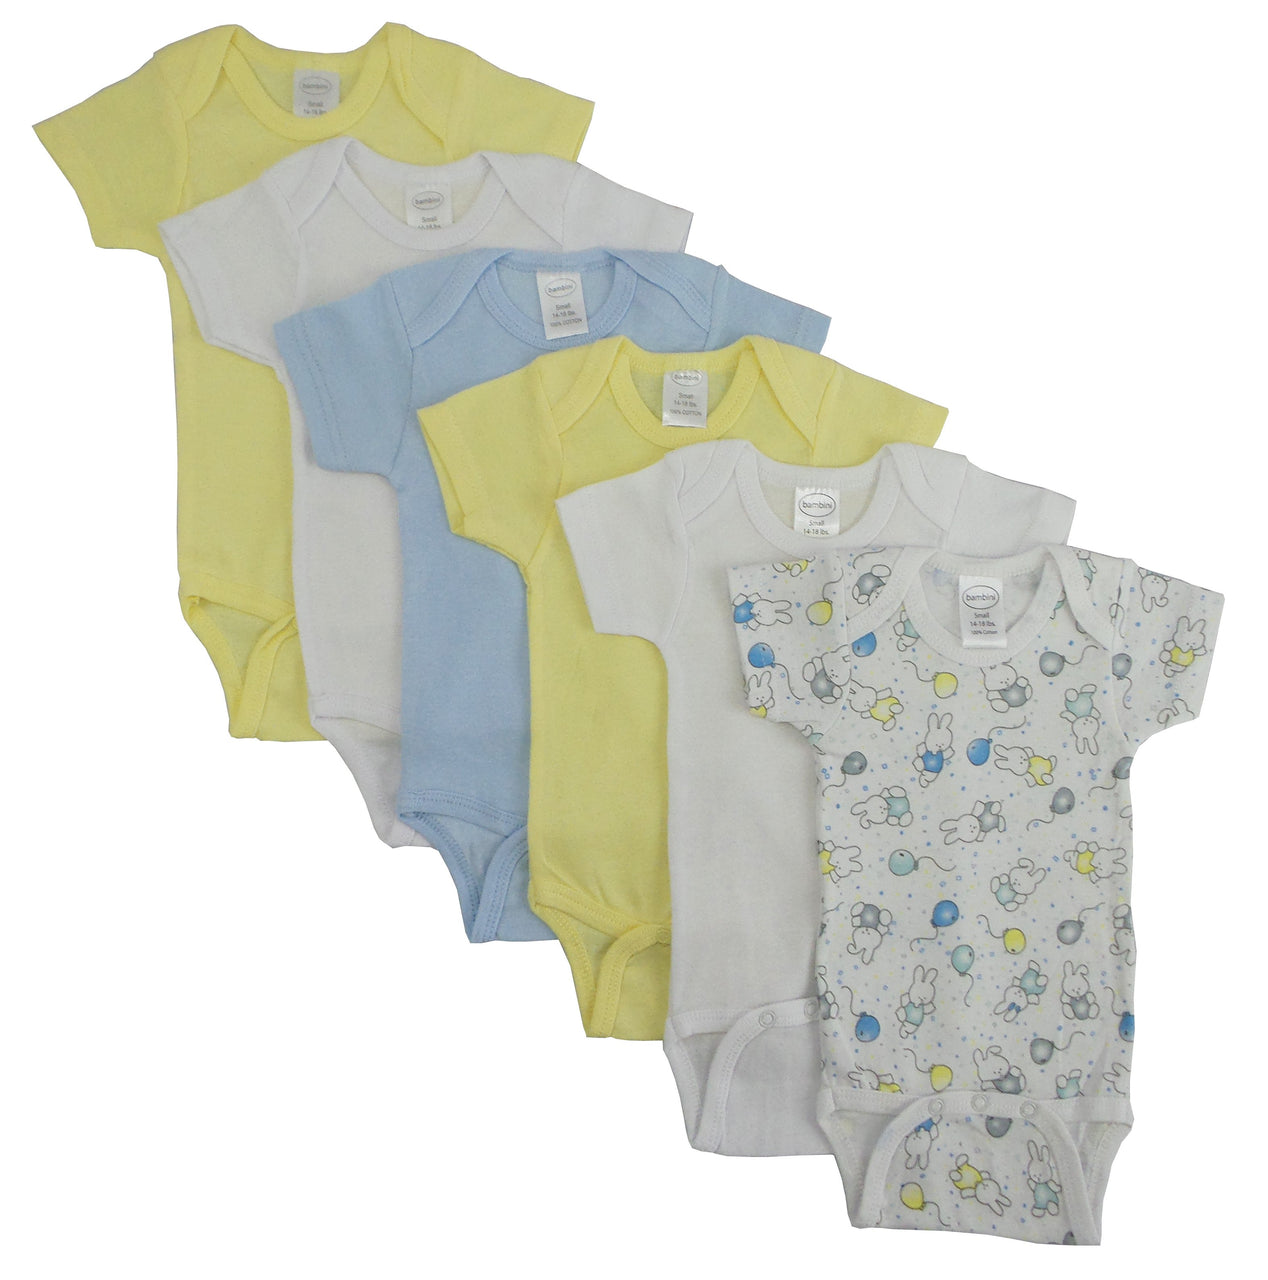 Baby Clothing - Printed Pastel Boys Short Sleeve Onesies (6 Pack)